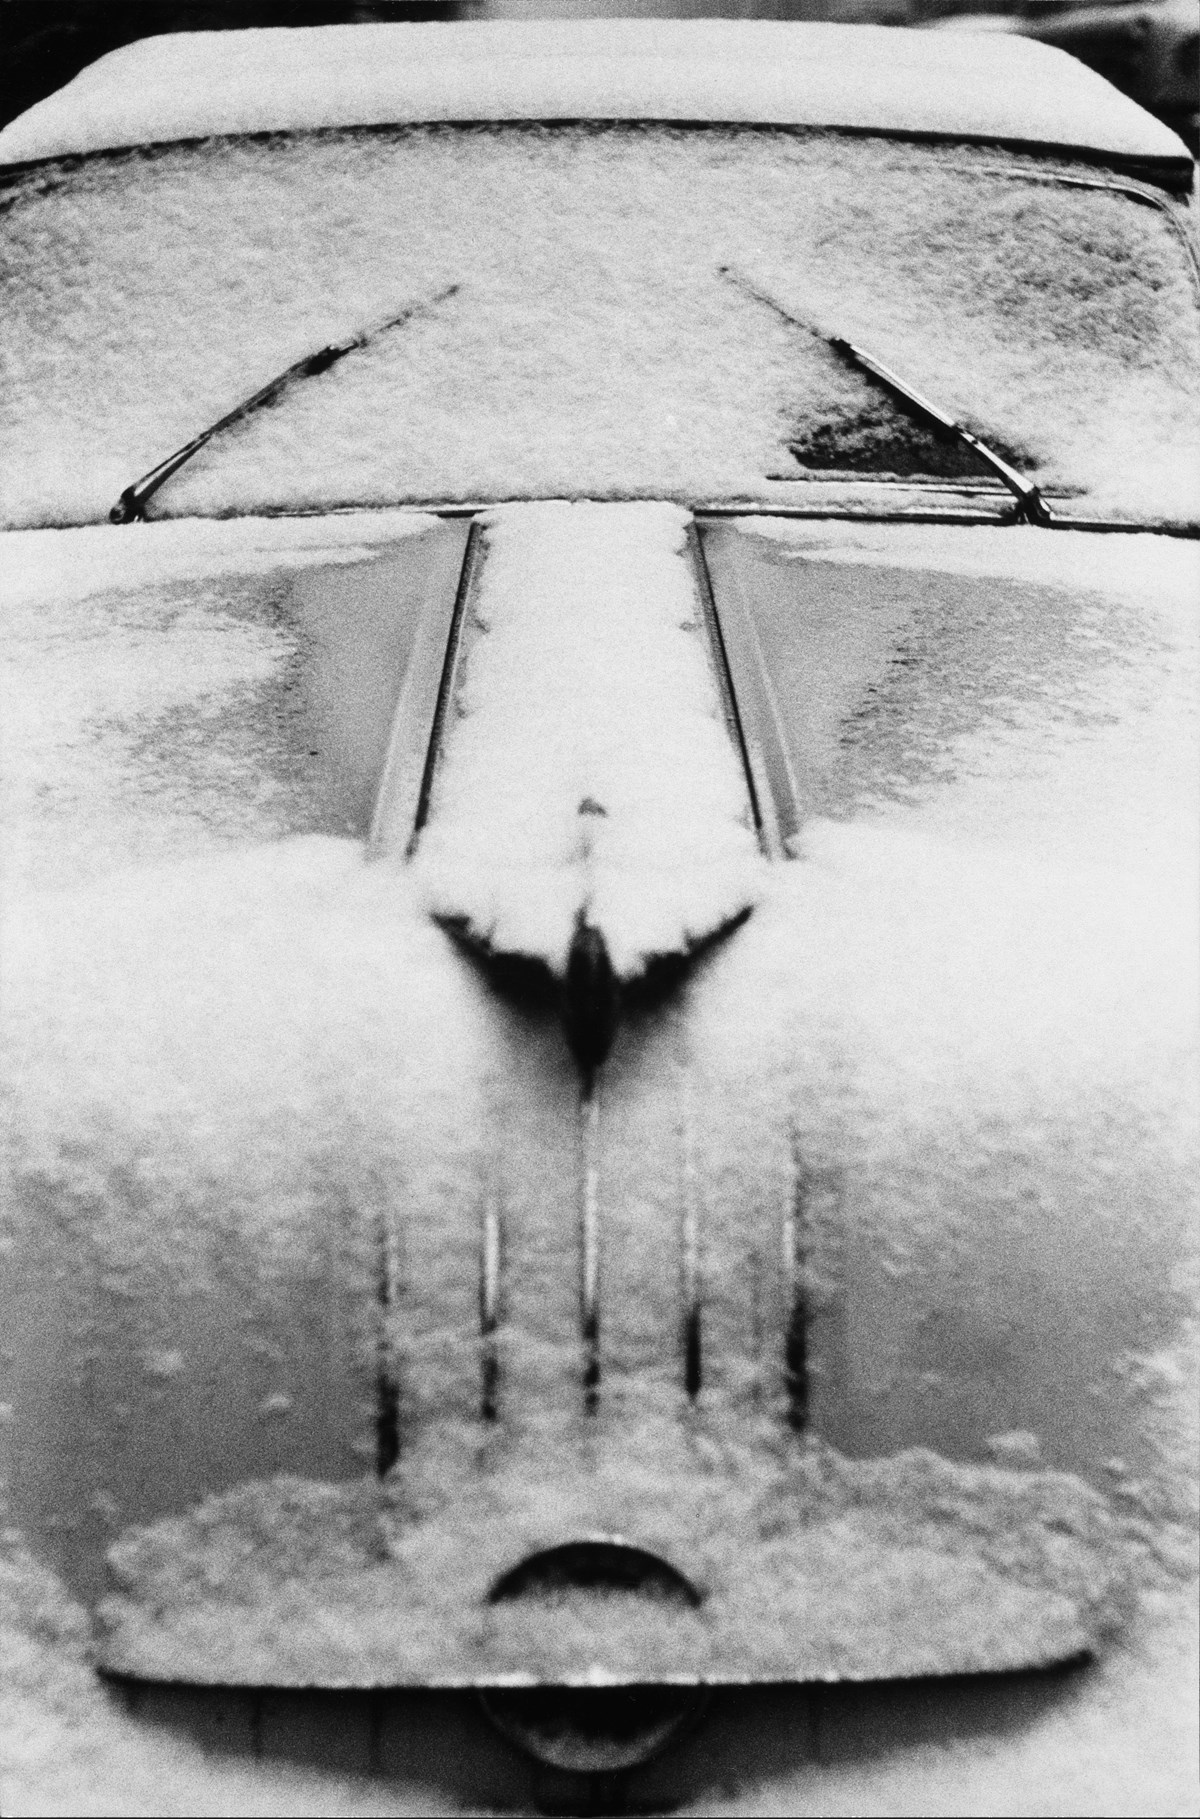 Louis Stettner: Snow-Car, Manhattan, 1956